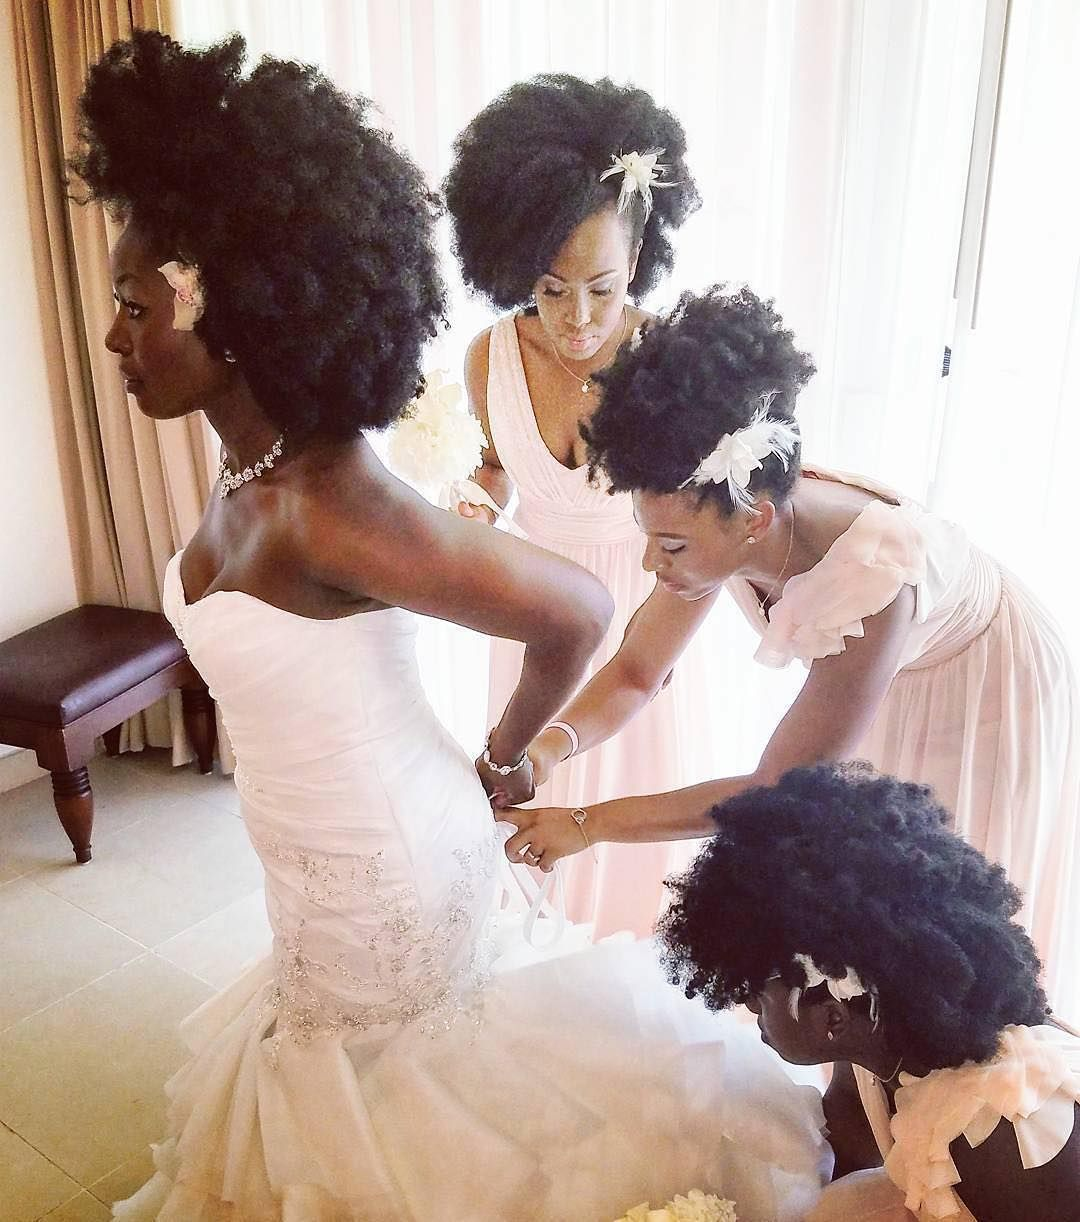 All that hair so beautiful and congrats to the bride stunning natural bride and bridal party slay beach wedding black girl with long hair ombrellifo Gallery